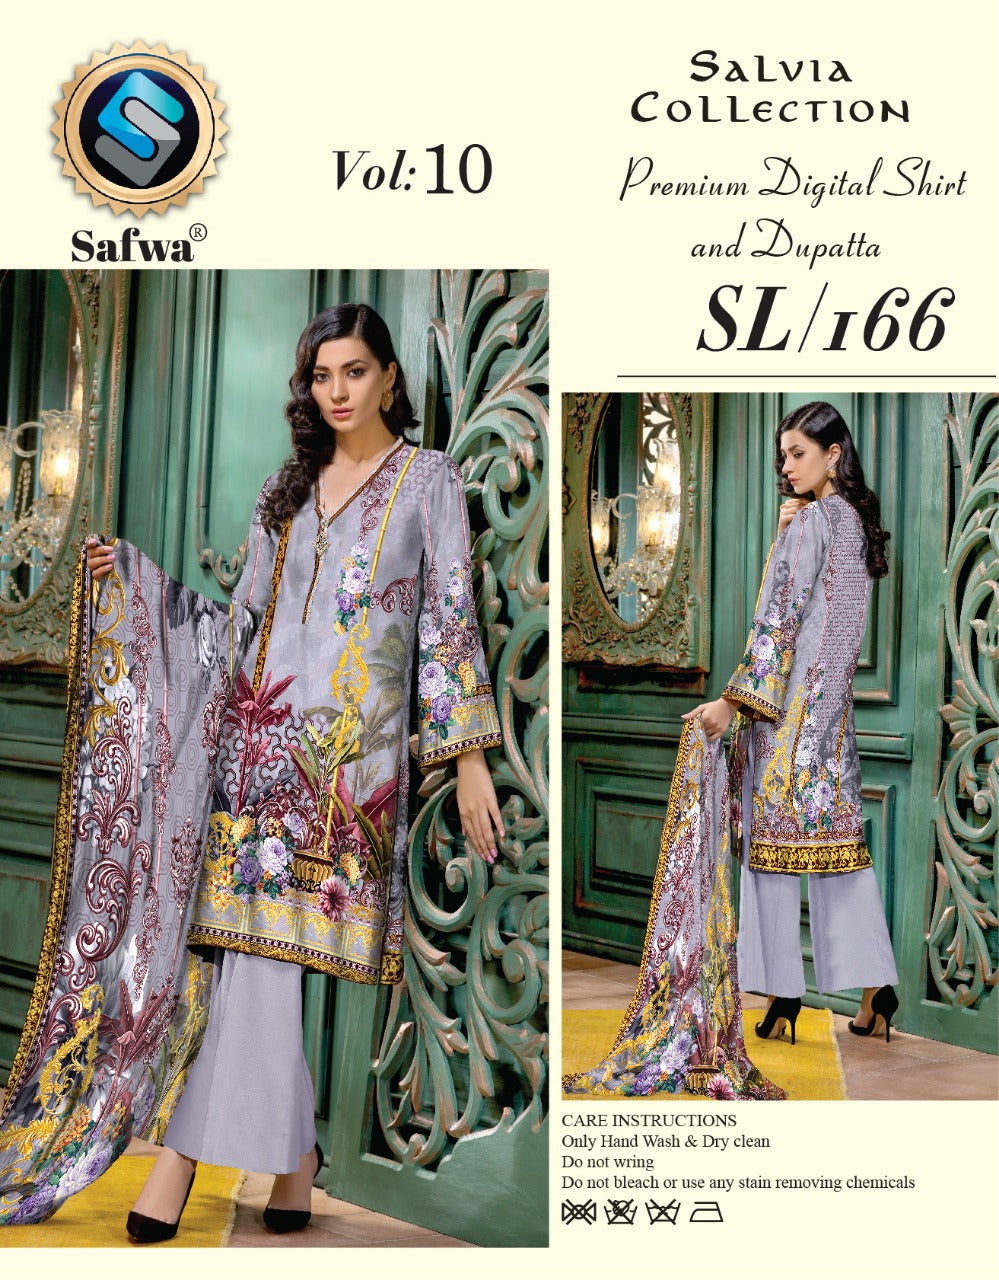 sl-166-SAFWA LAWN-SALVIA COLLECTION- PRINTED -2 PIECE DRESS - Two Piece Suit - safwa